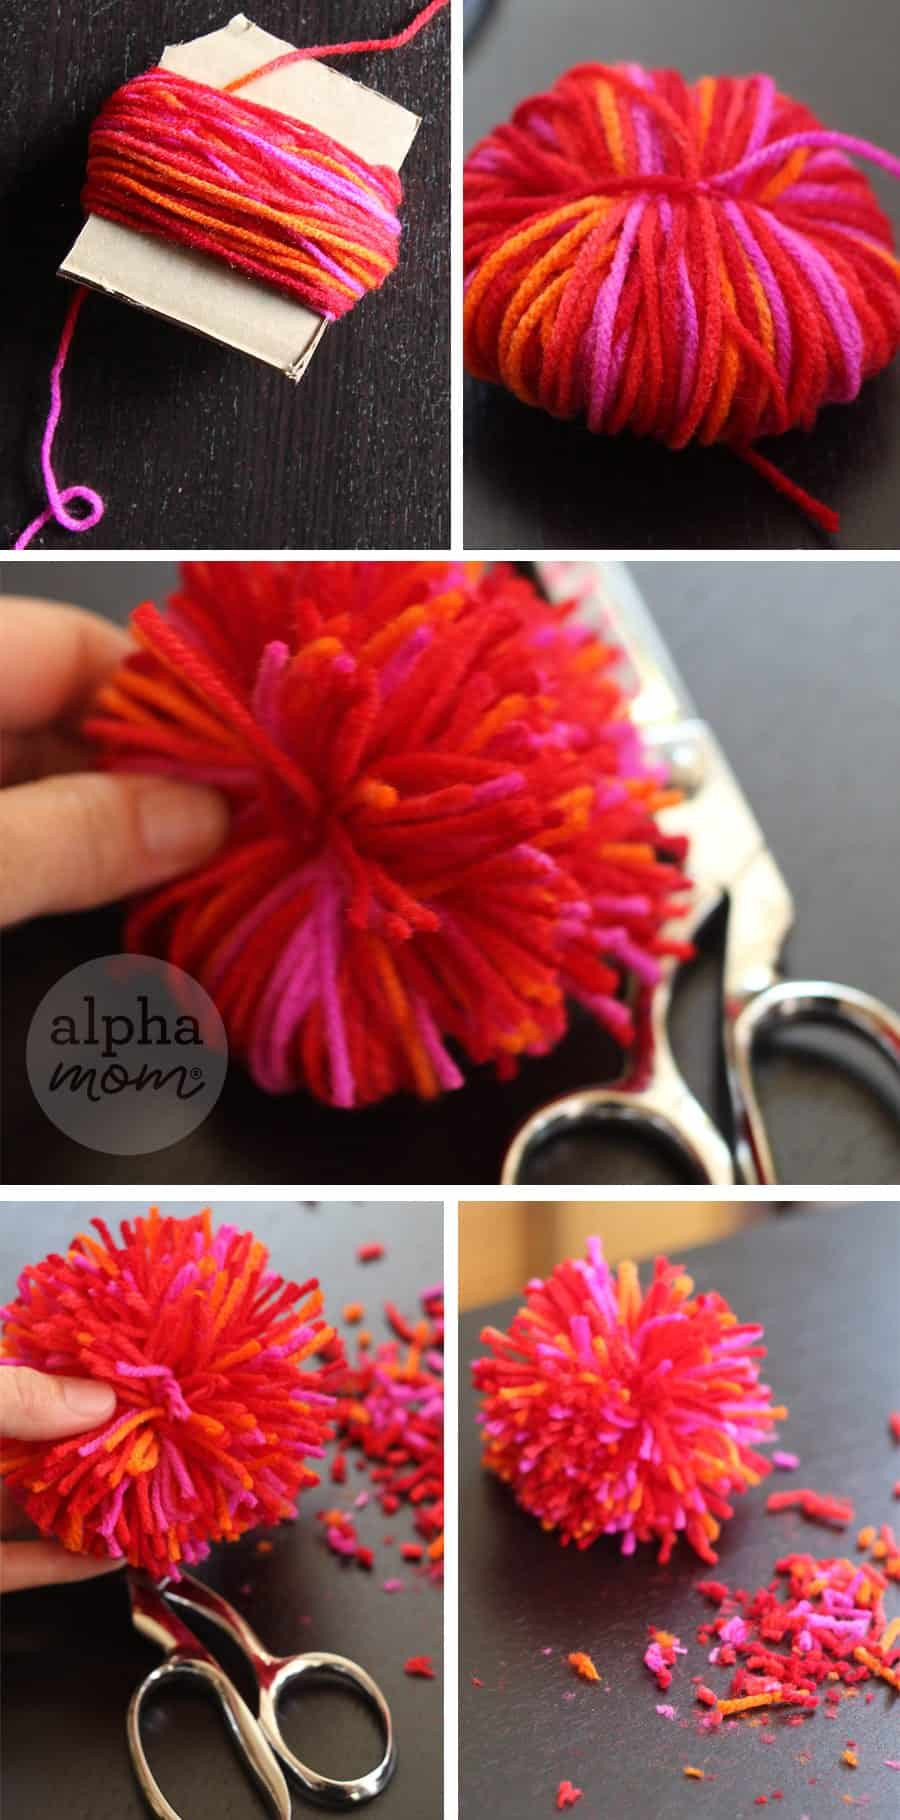 How to Make Yarn Pom Poms and Fun Crafts